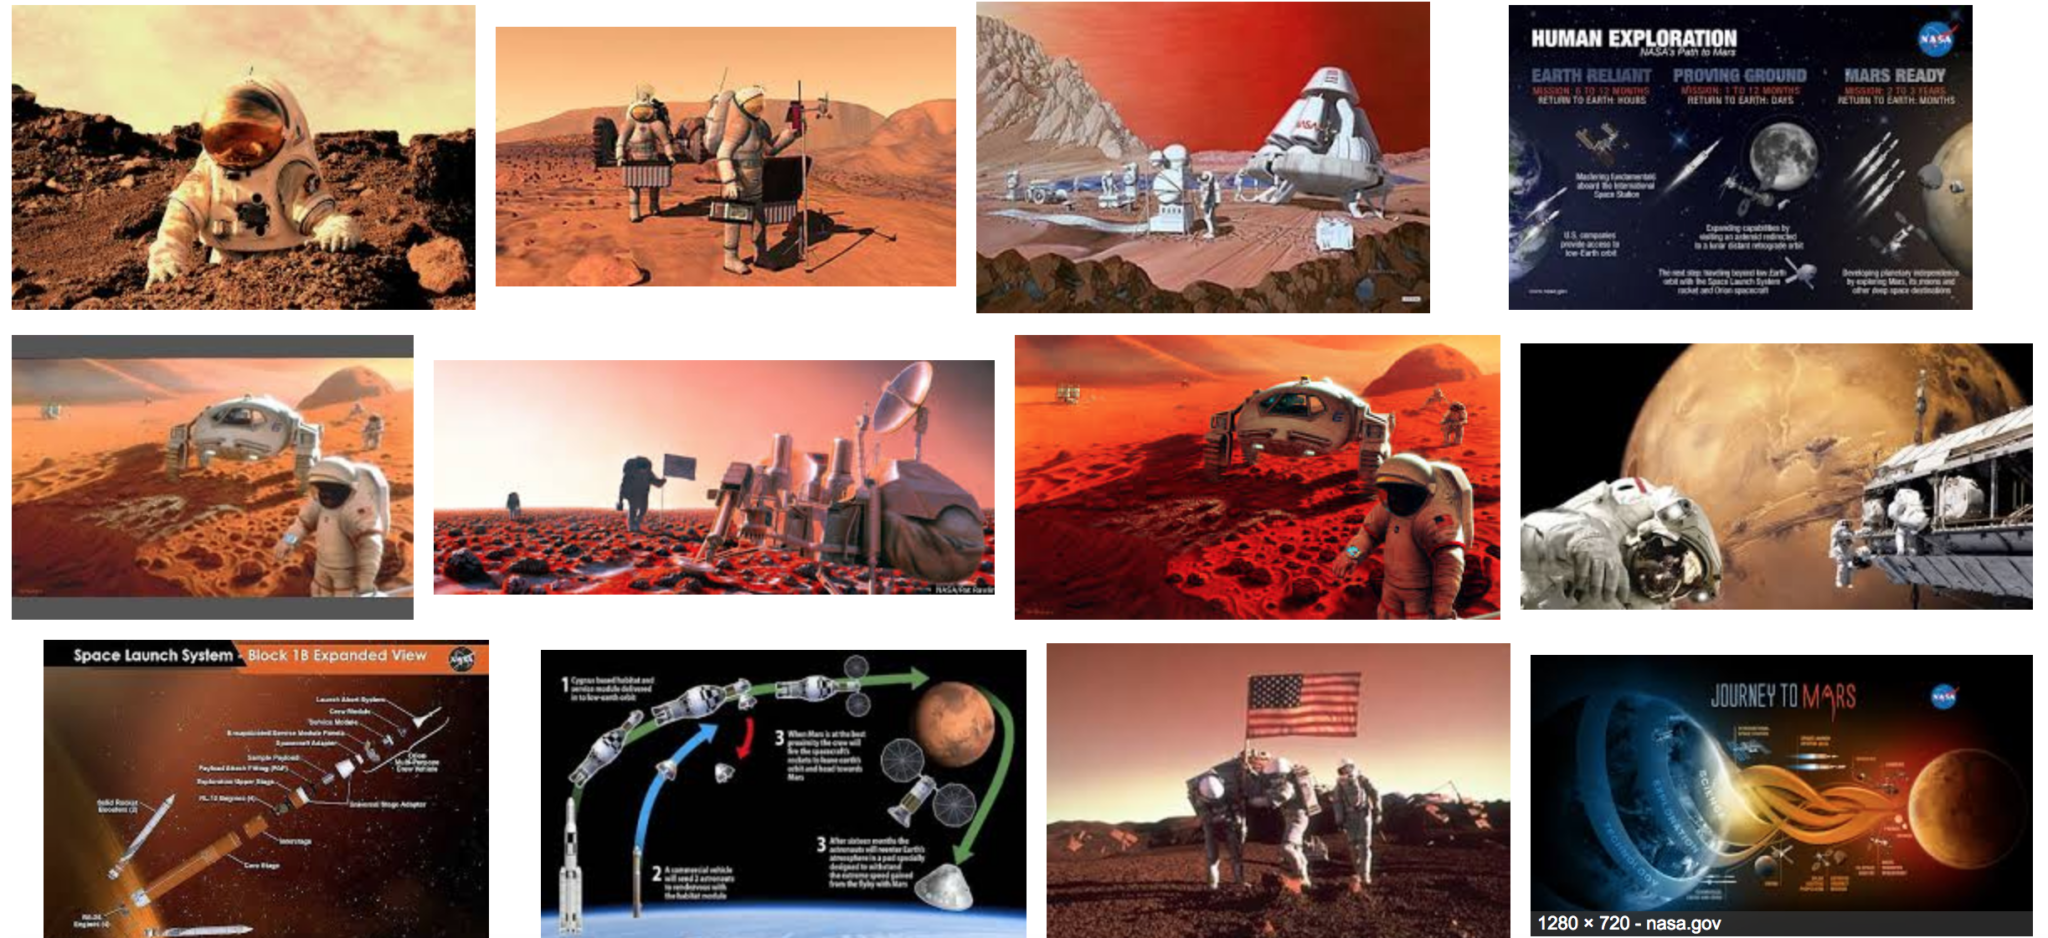 A sea of cool pictures of mars and spaceships and the frontiers of human potential